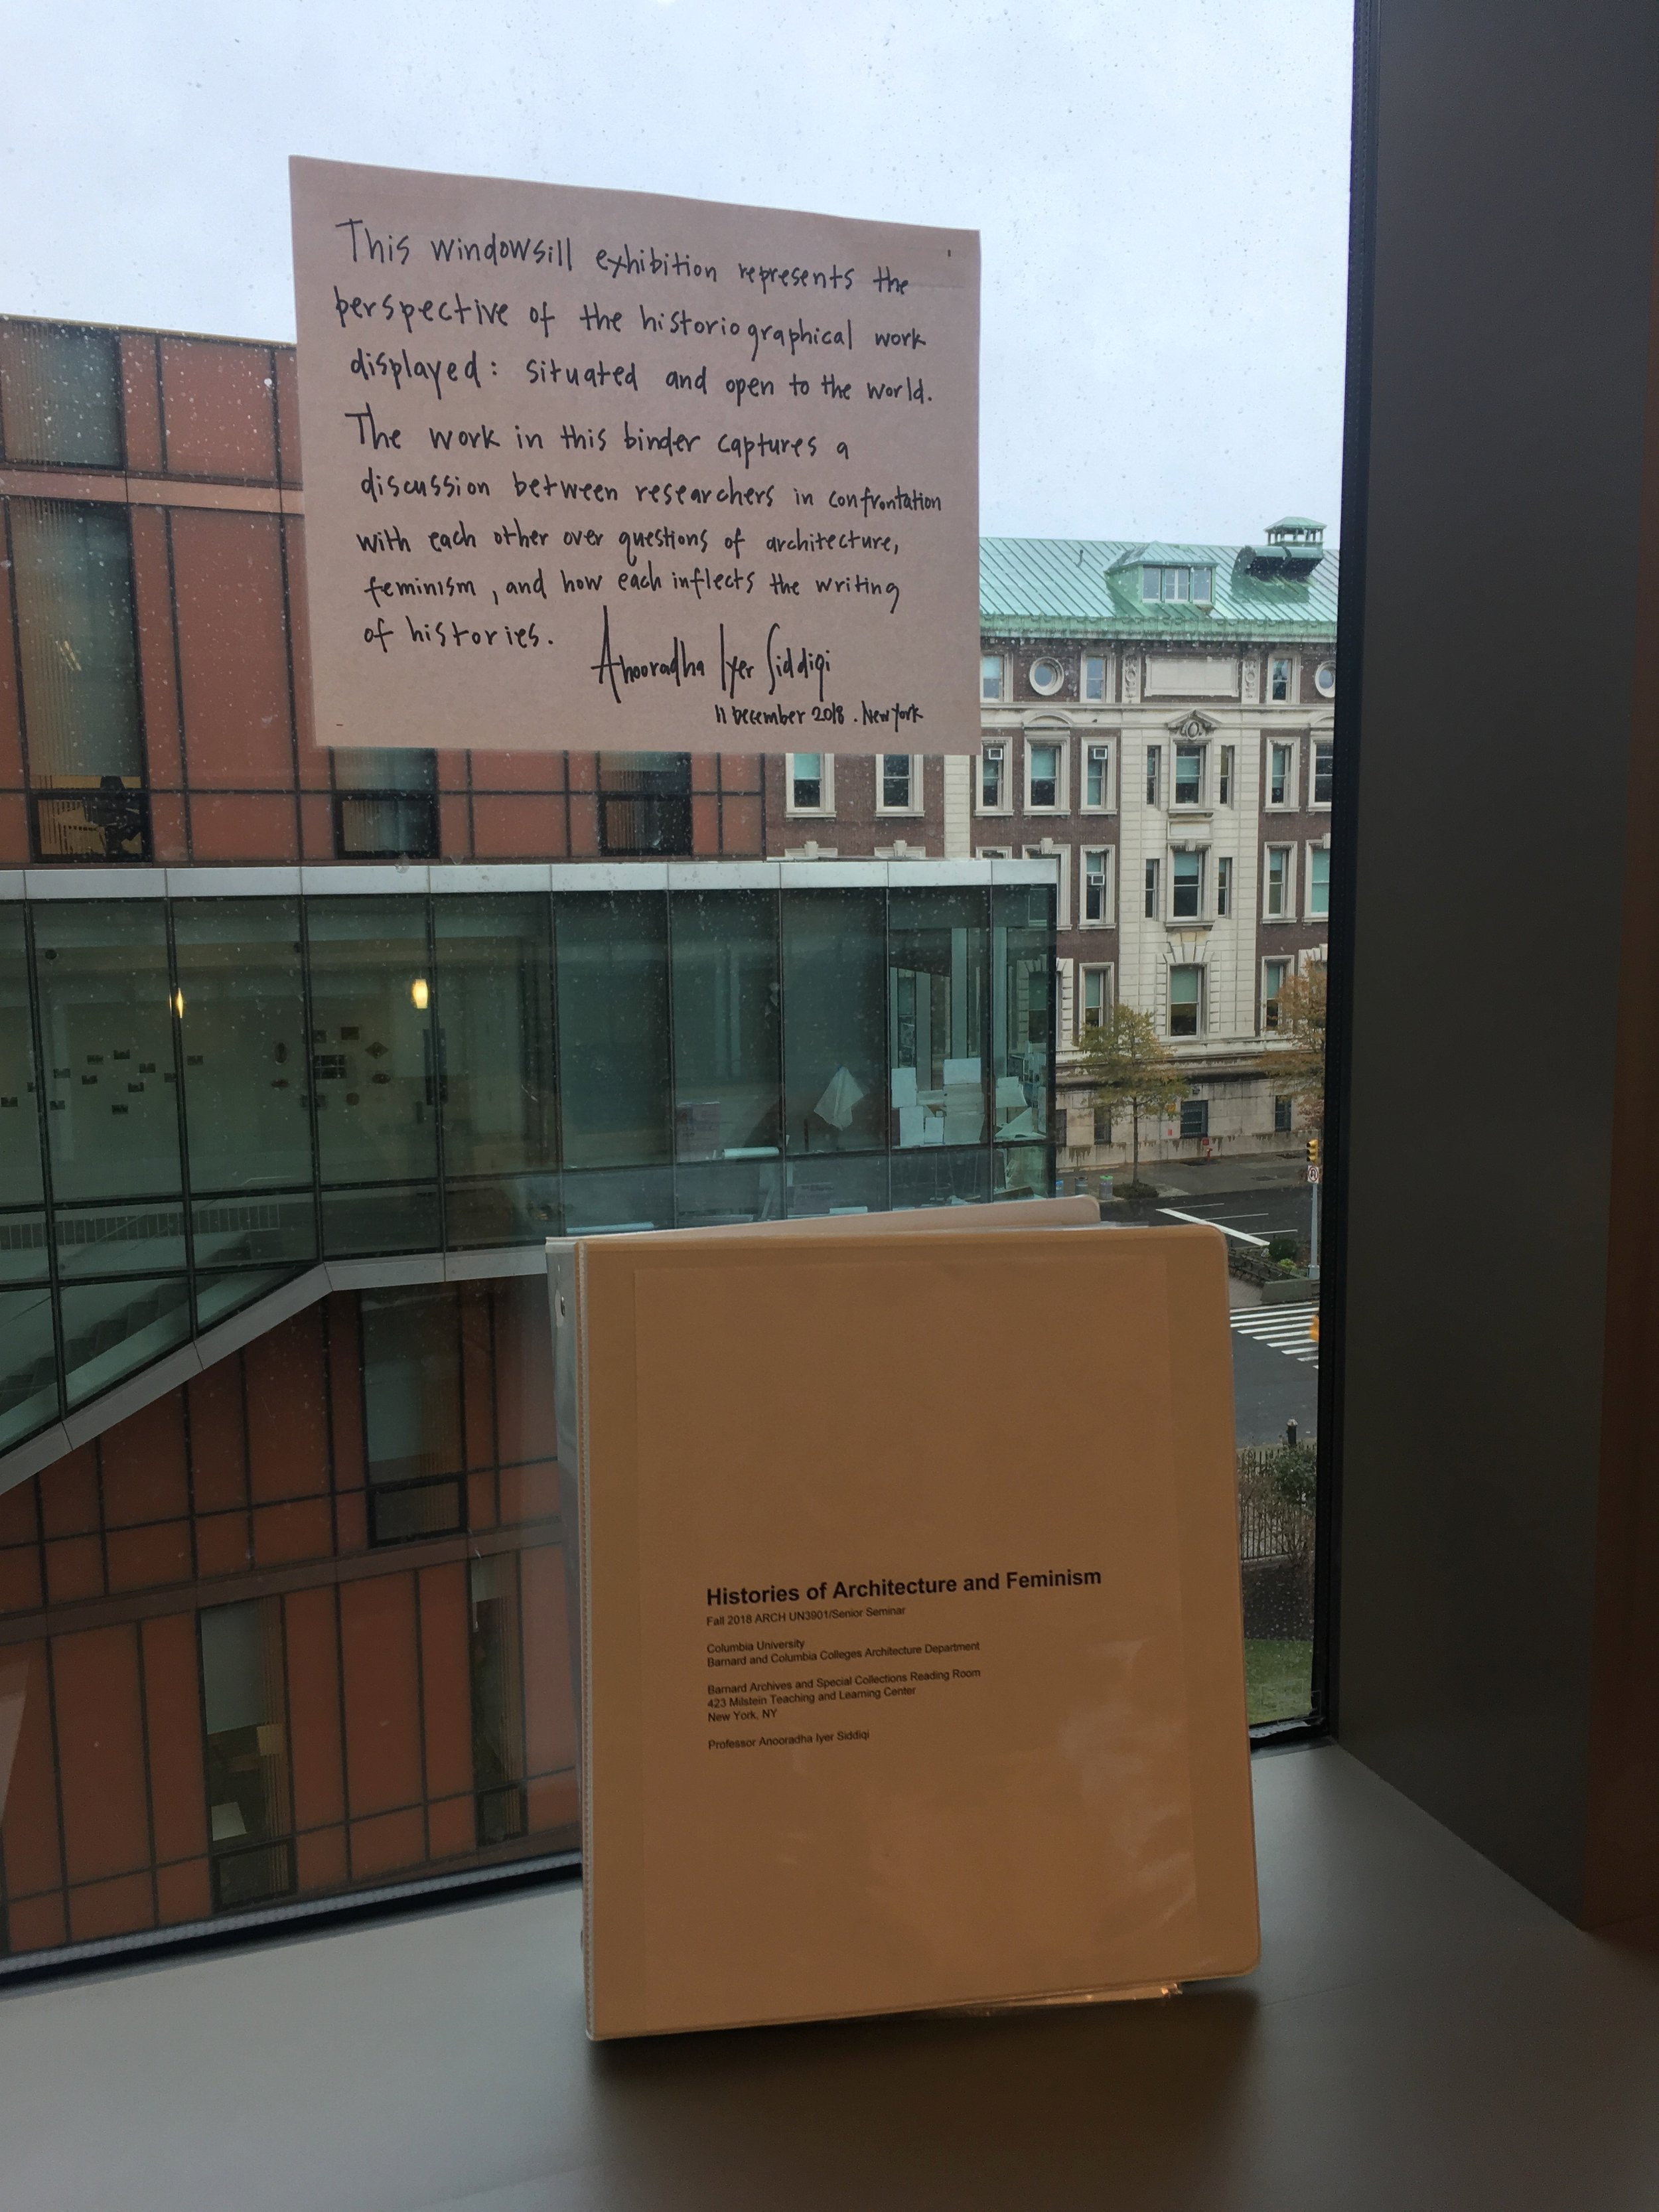 Figure 2. Histories of Architecture and Feminism windowsill exhibition, Barnard Archives and Special Collections reading room, December 2018. Photograph by Anooradha Iyer Siddiqi.